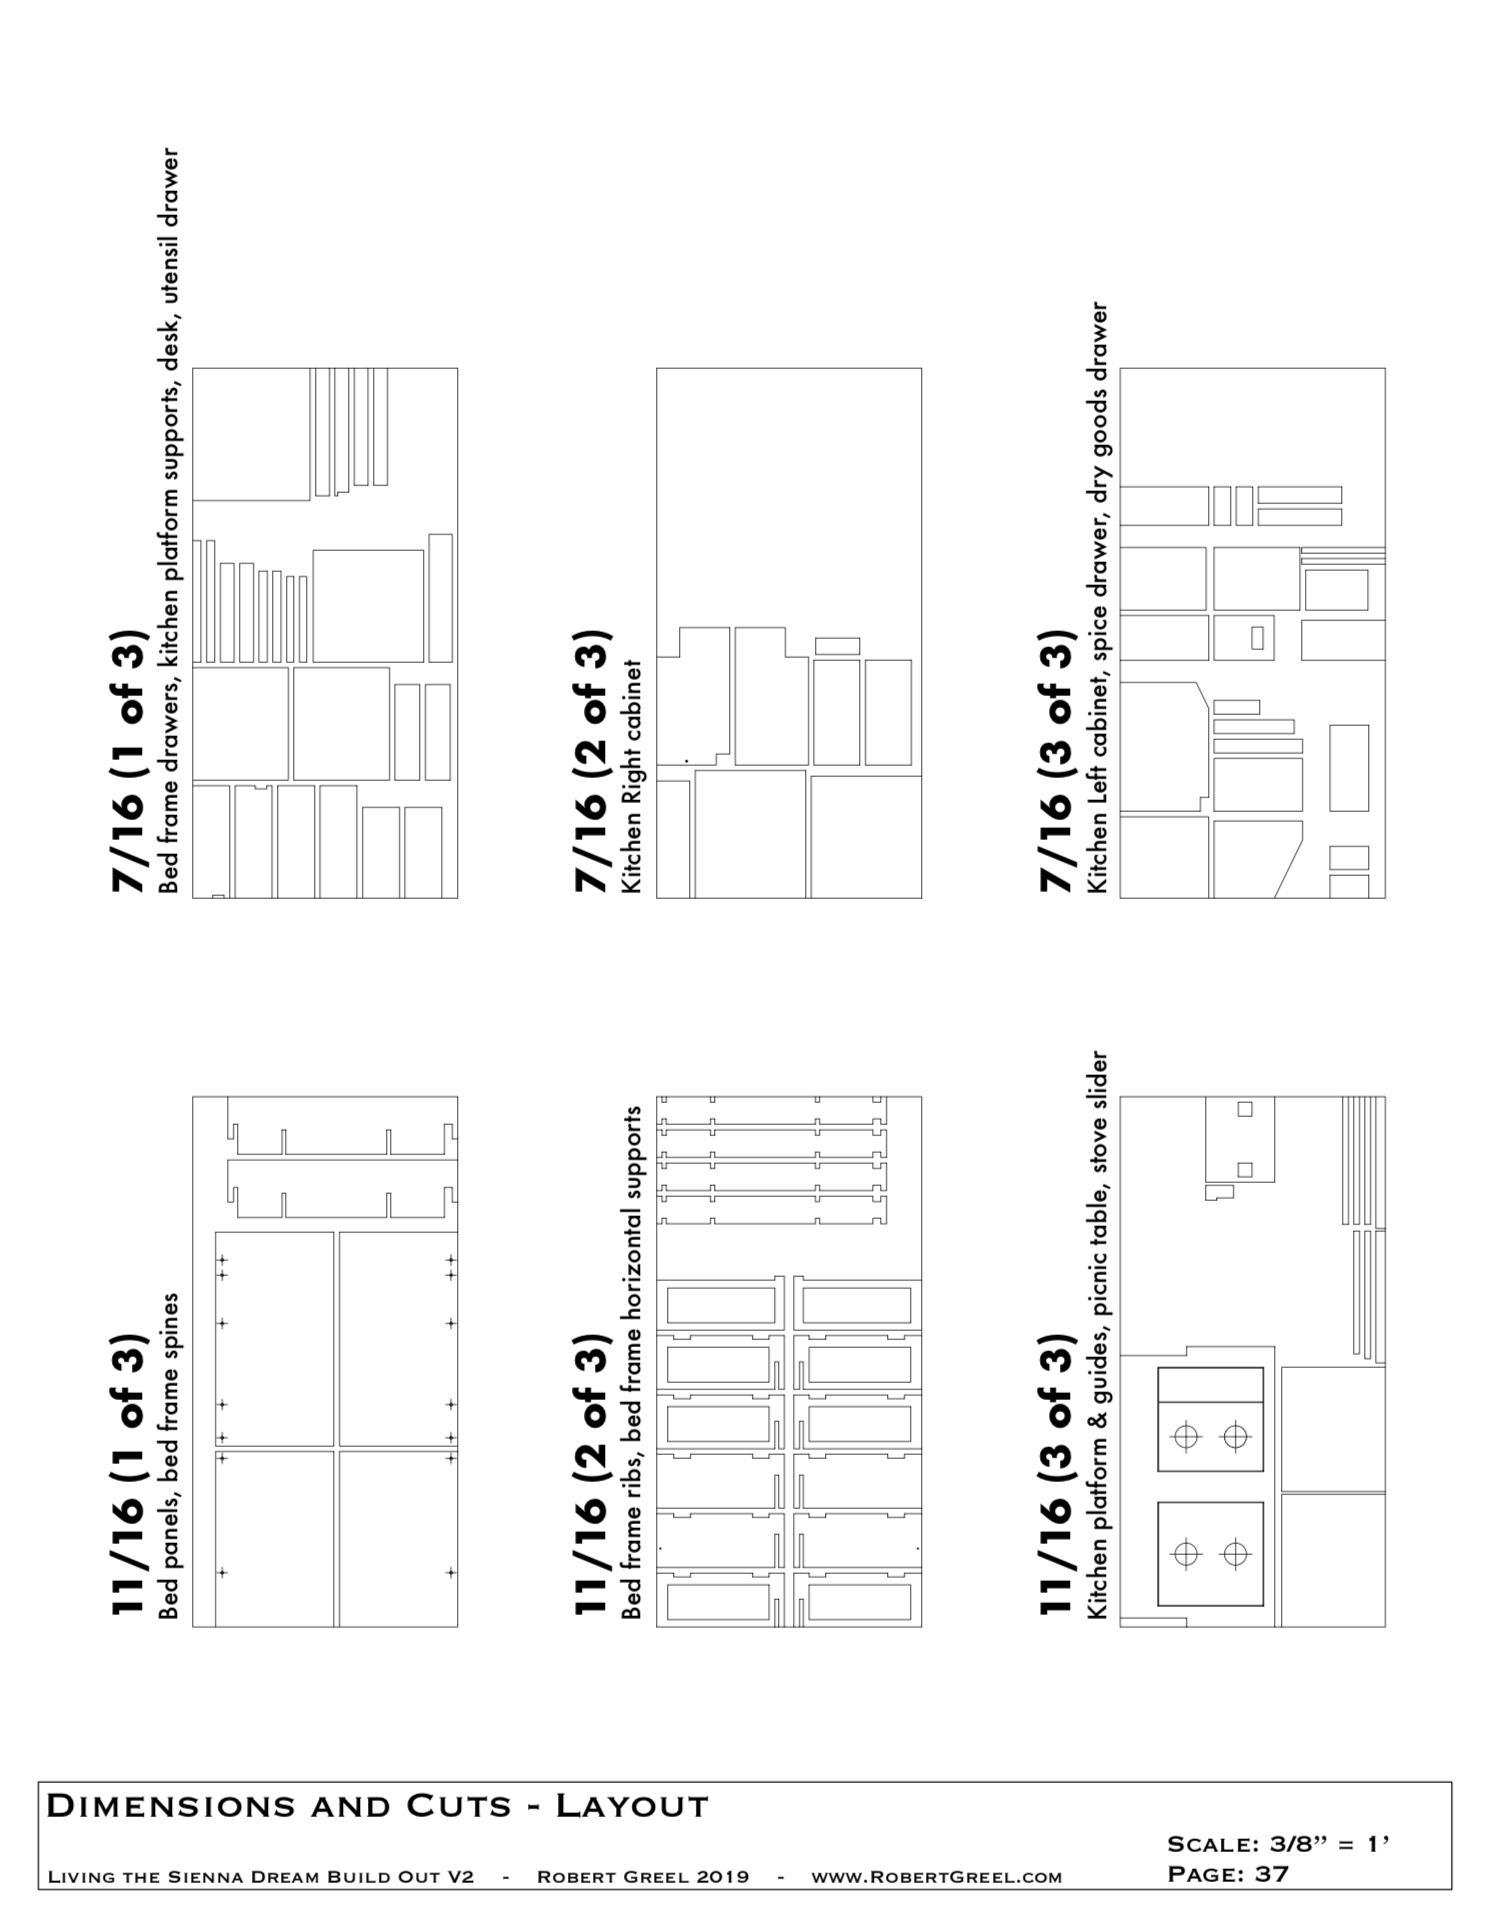 dimensions and cuts layout.png